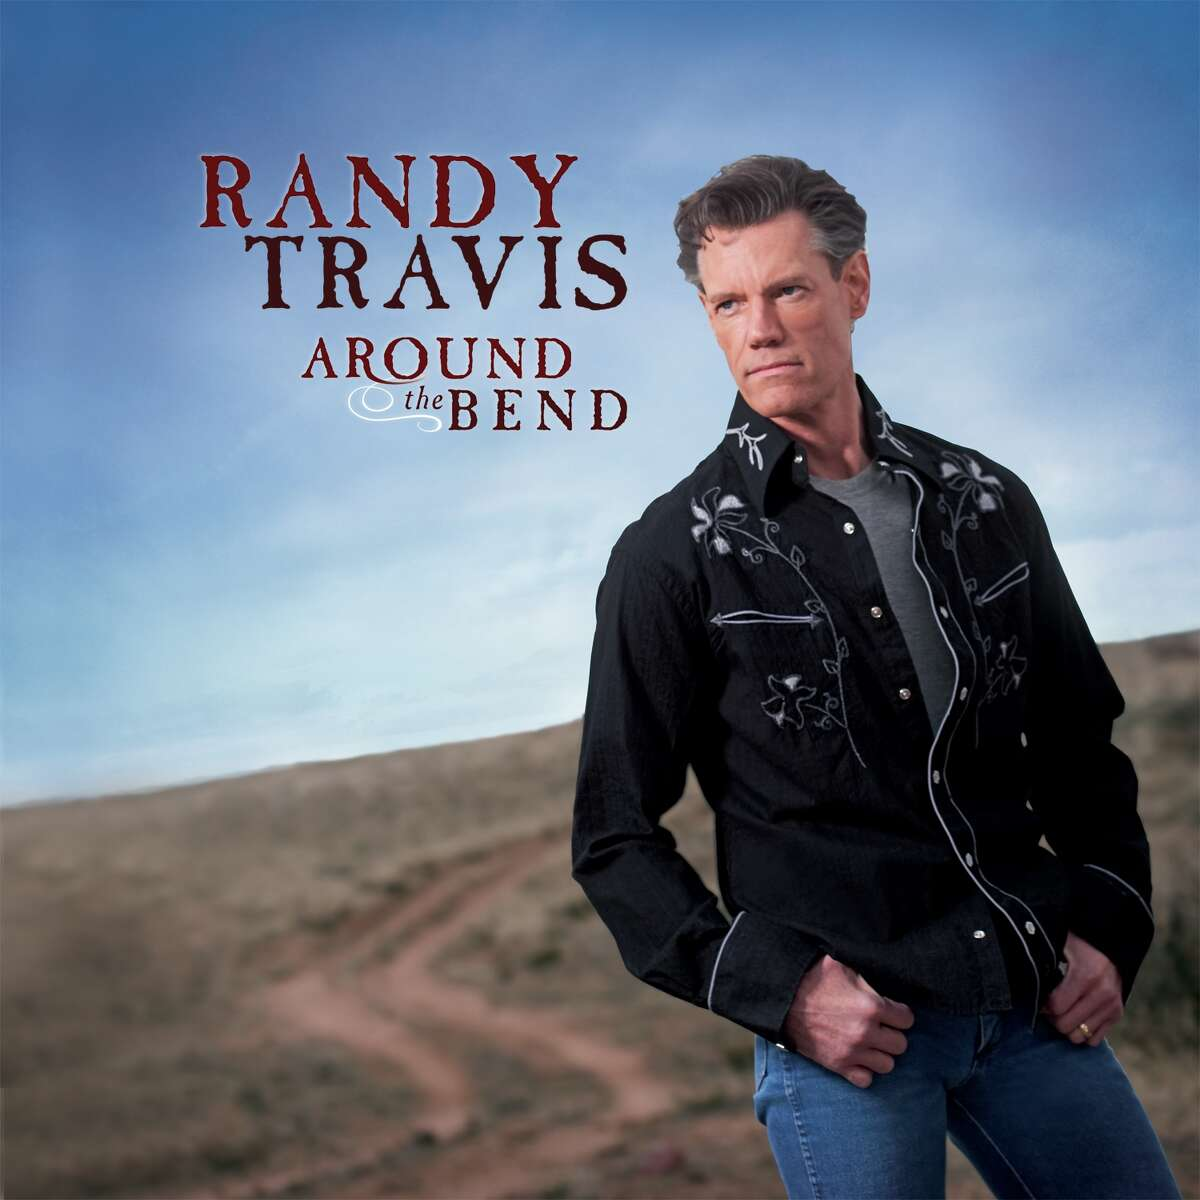 """CD COVER -- In this image released by Warner Bros., the latest CD by Randy Travis, """"Around The Bend,"""" is shown. (AP Photo/Warner Bros.) ** NO SALES **"""